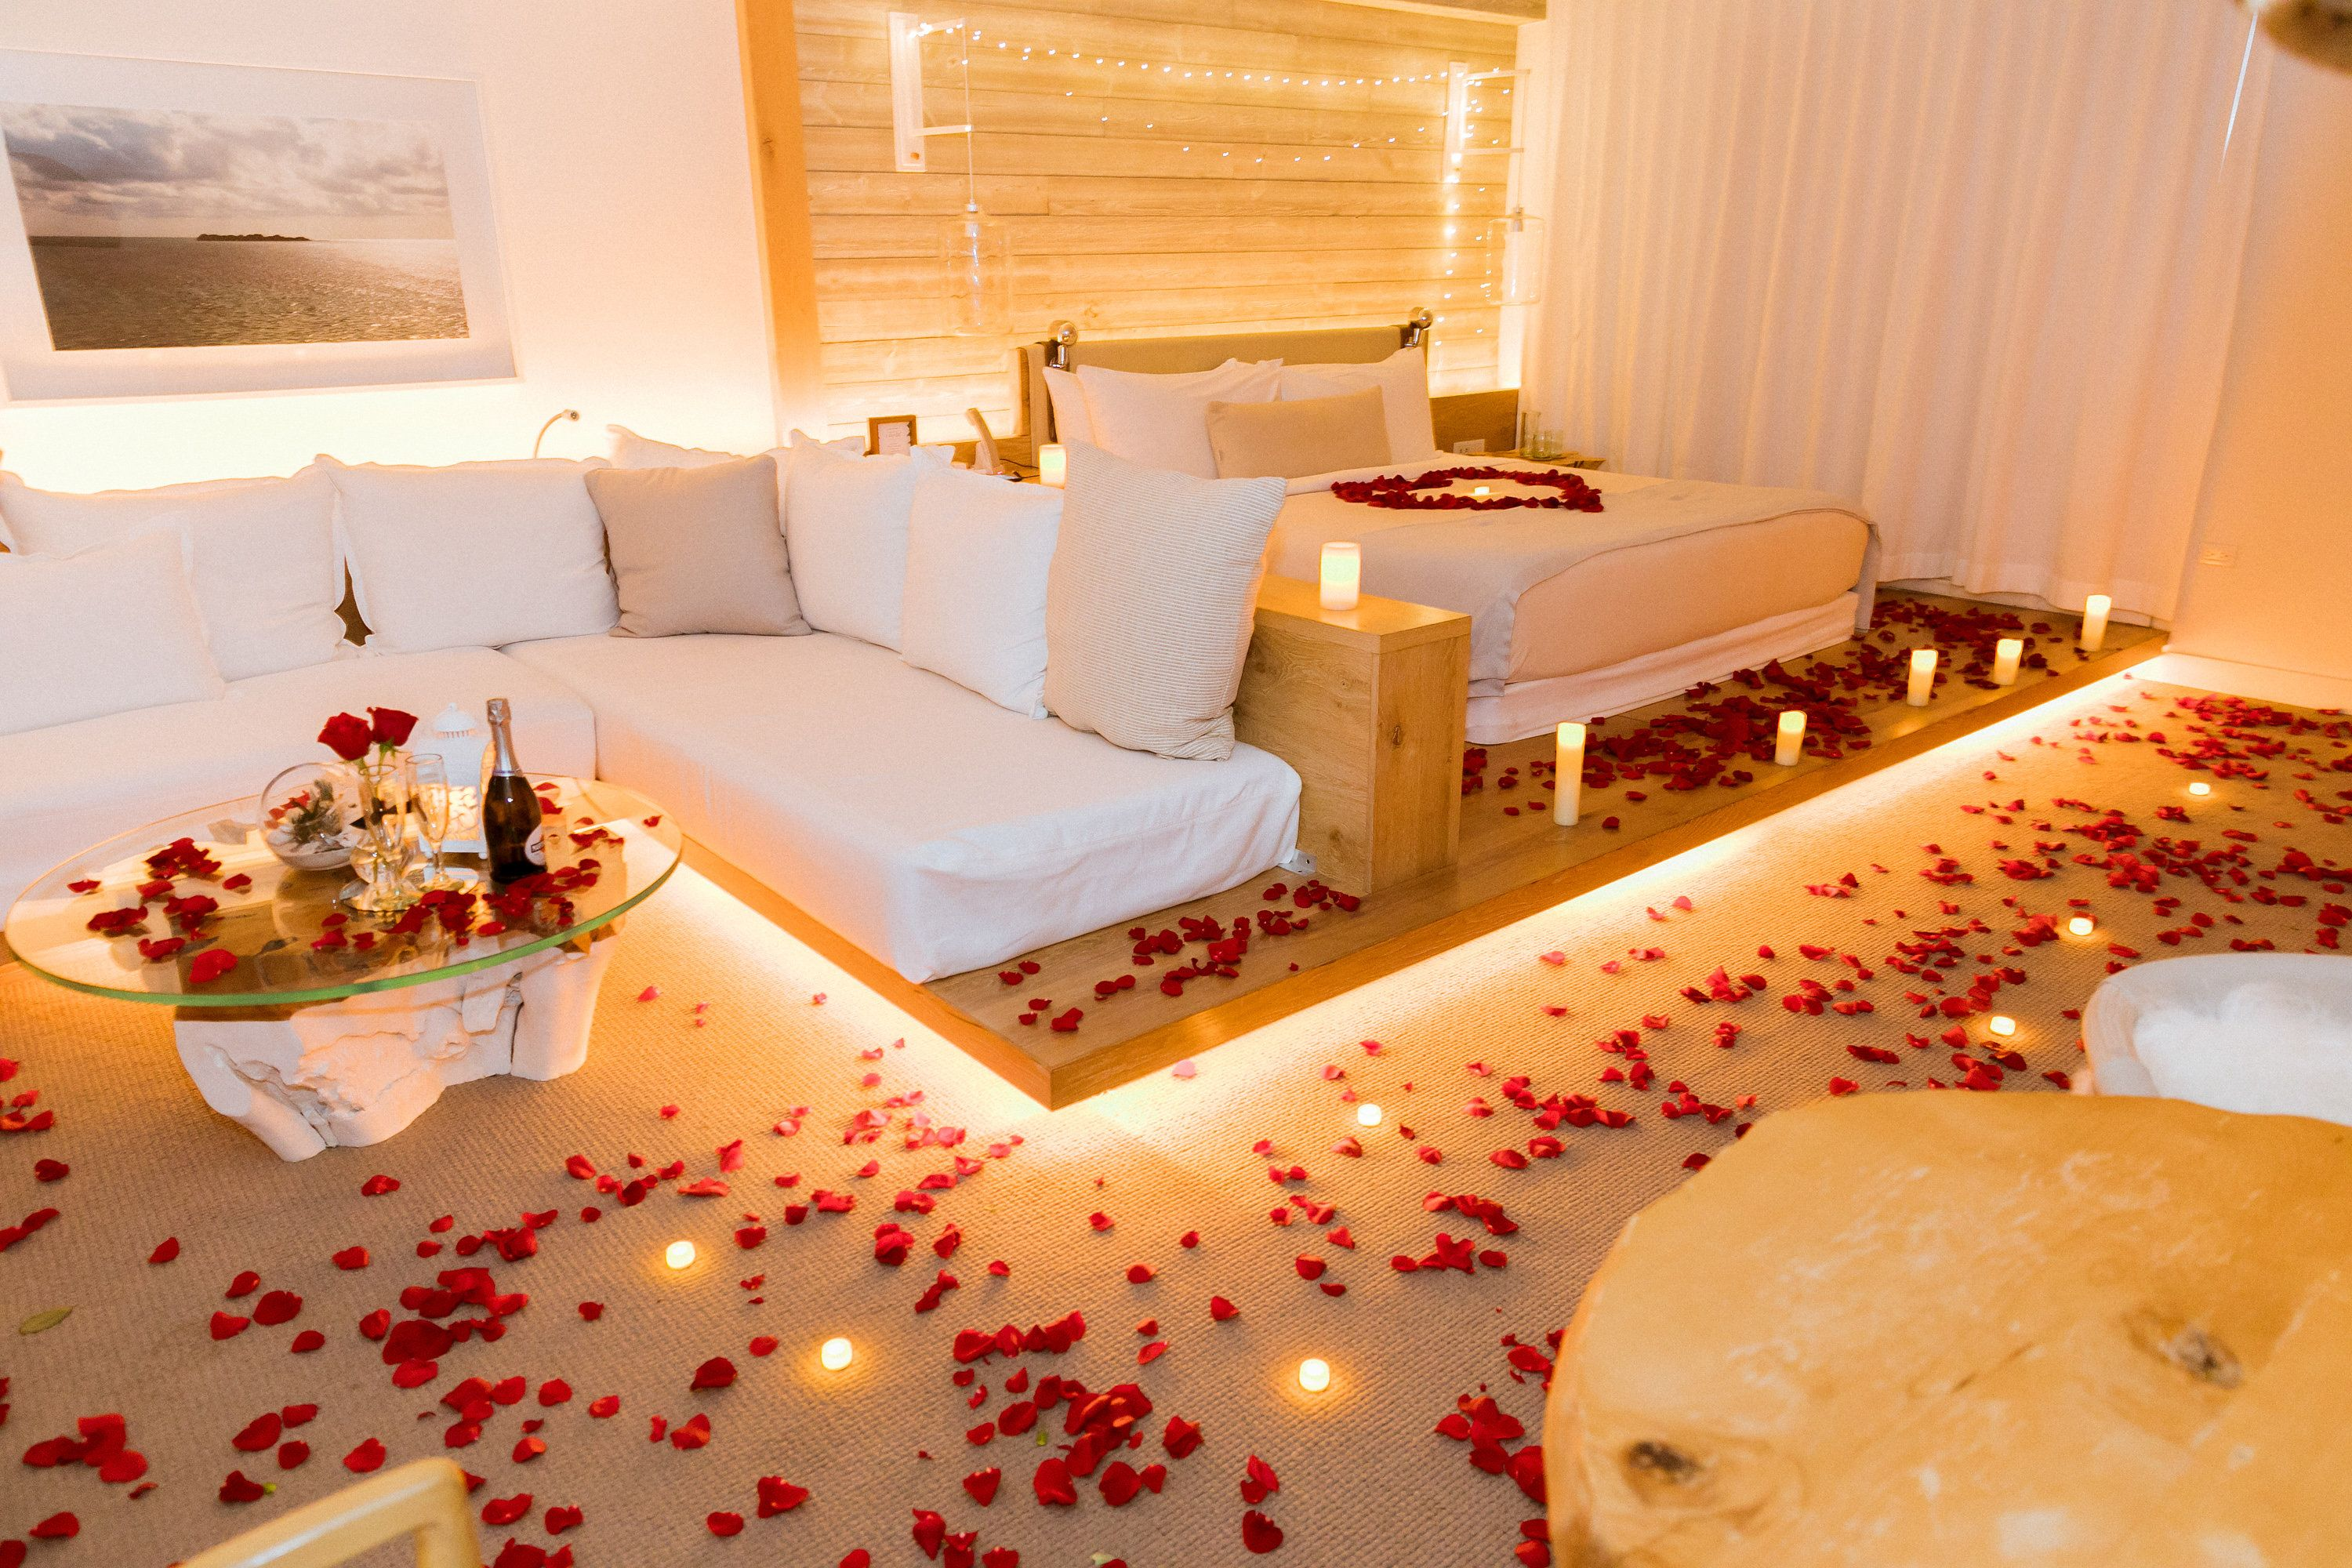 The Romantic Hotel Room Decoration With Real Rose Petals Candles And Flowers We Also Serve Romantic Bedroom Decor Hotel Room Decoration Romantic Hotel Rooms